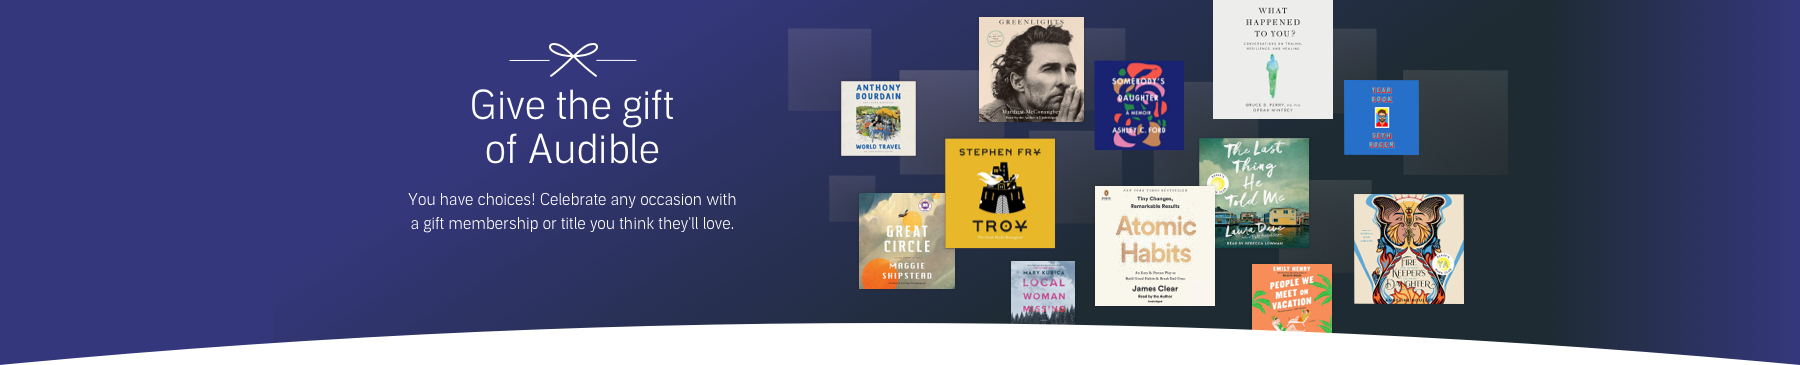 Give the gift of Audible. You have choices! celebrate any occasion with a gift membership or title you think they'll love